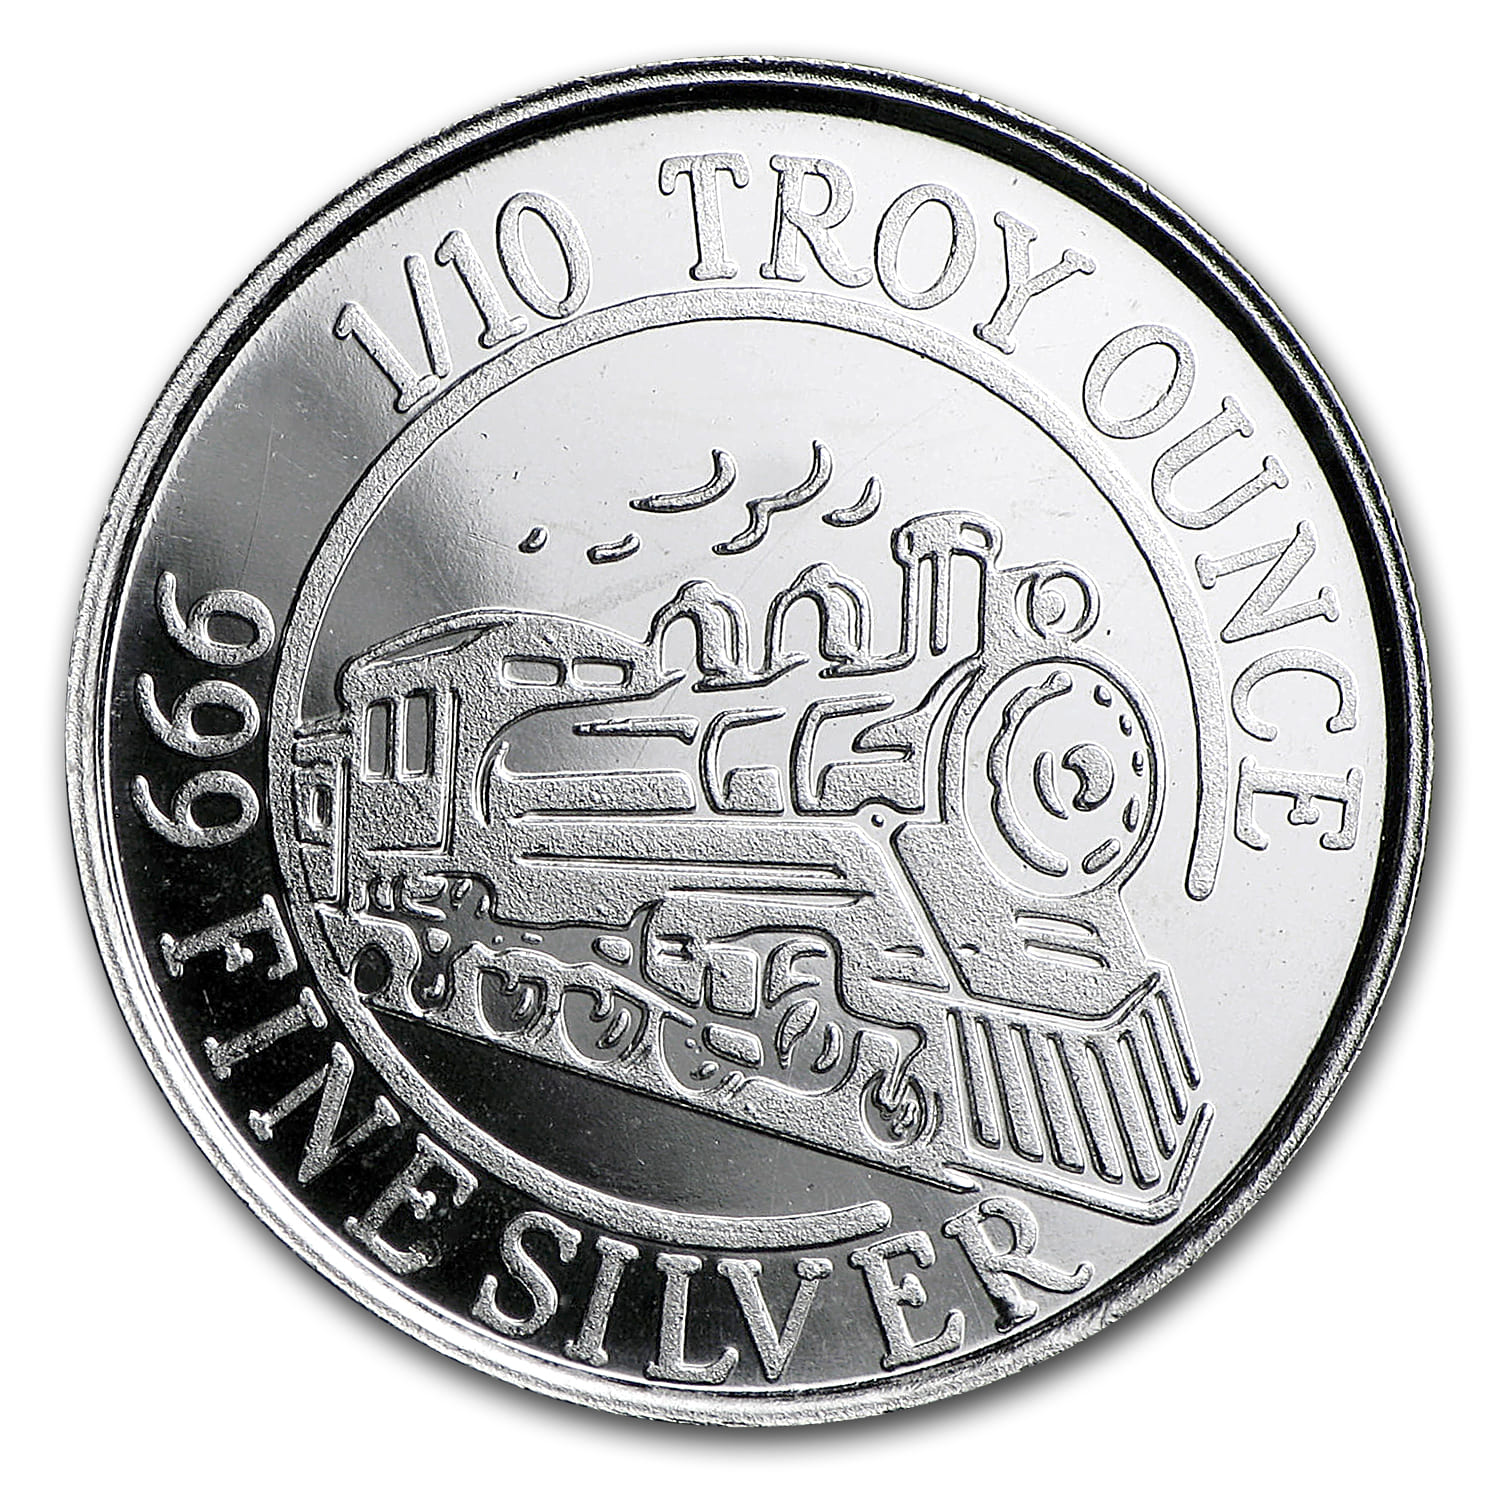 1/10 oz Silver Round - Monarch Precious Metals (Steam Train)